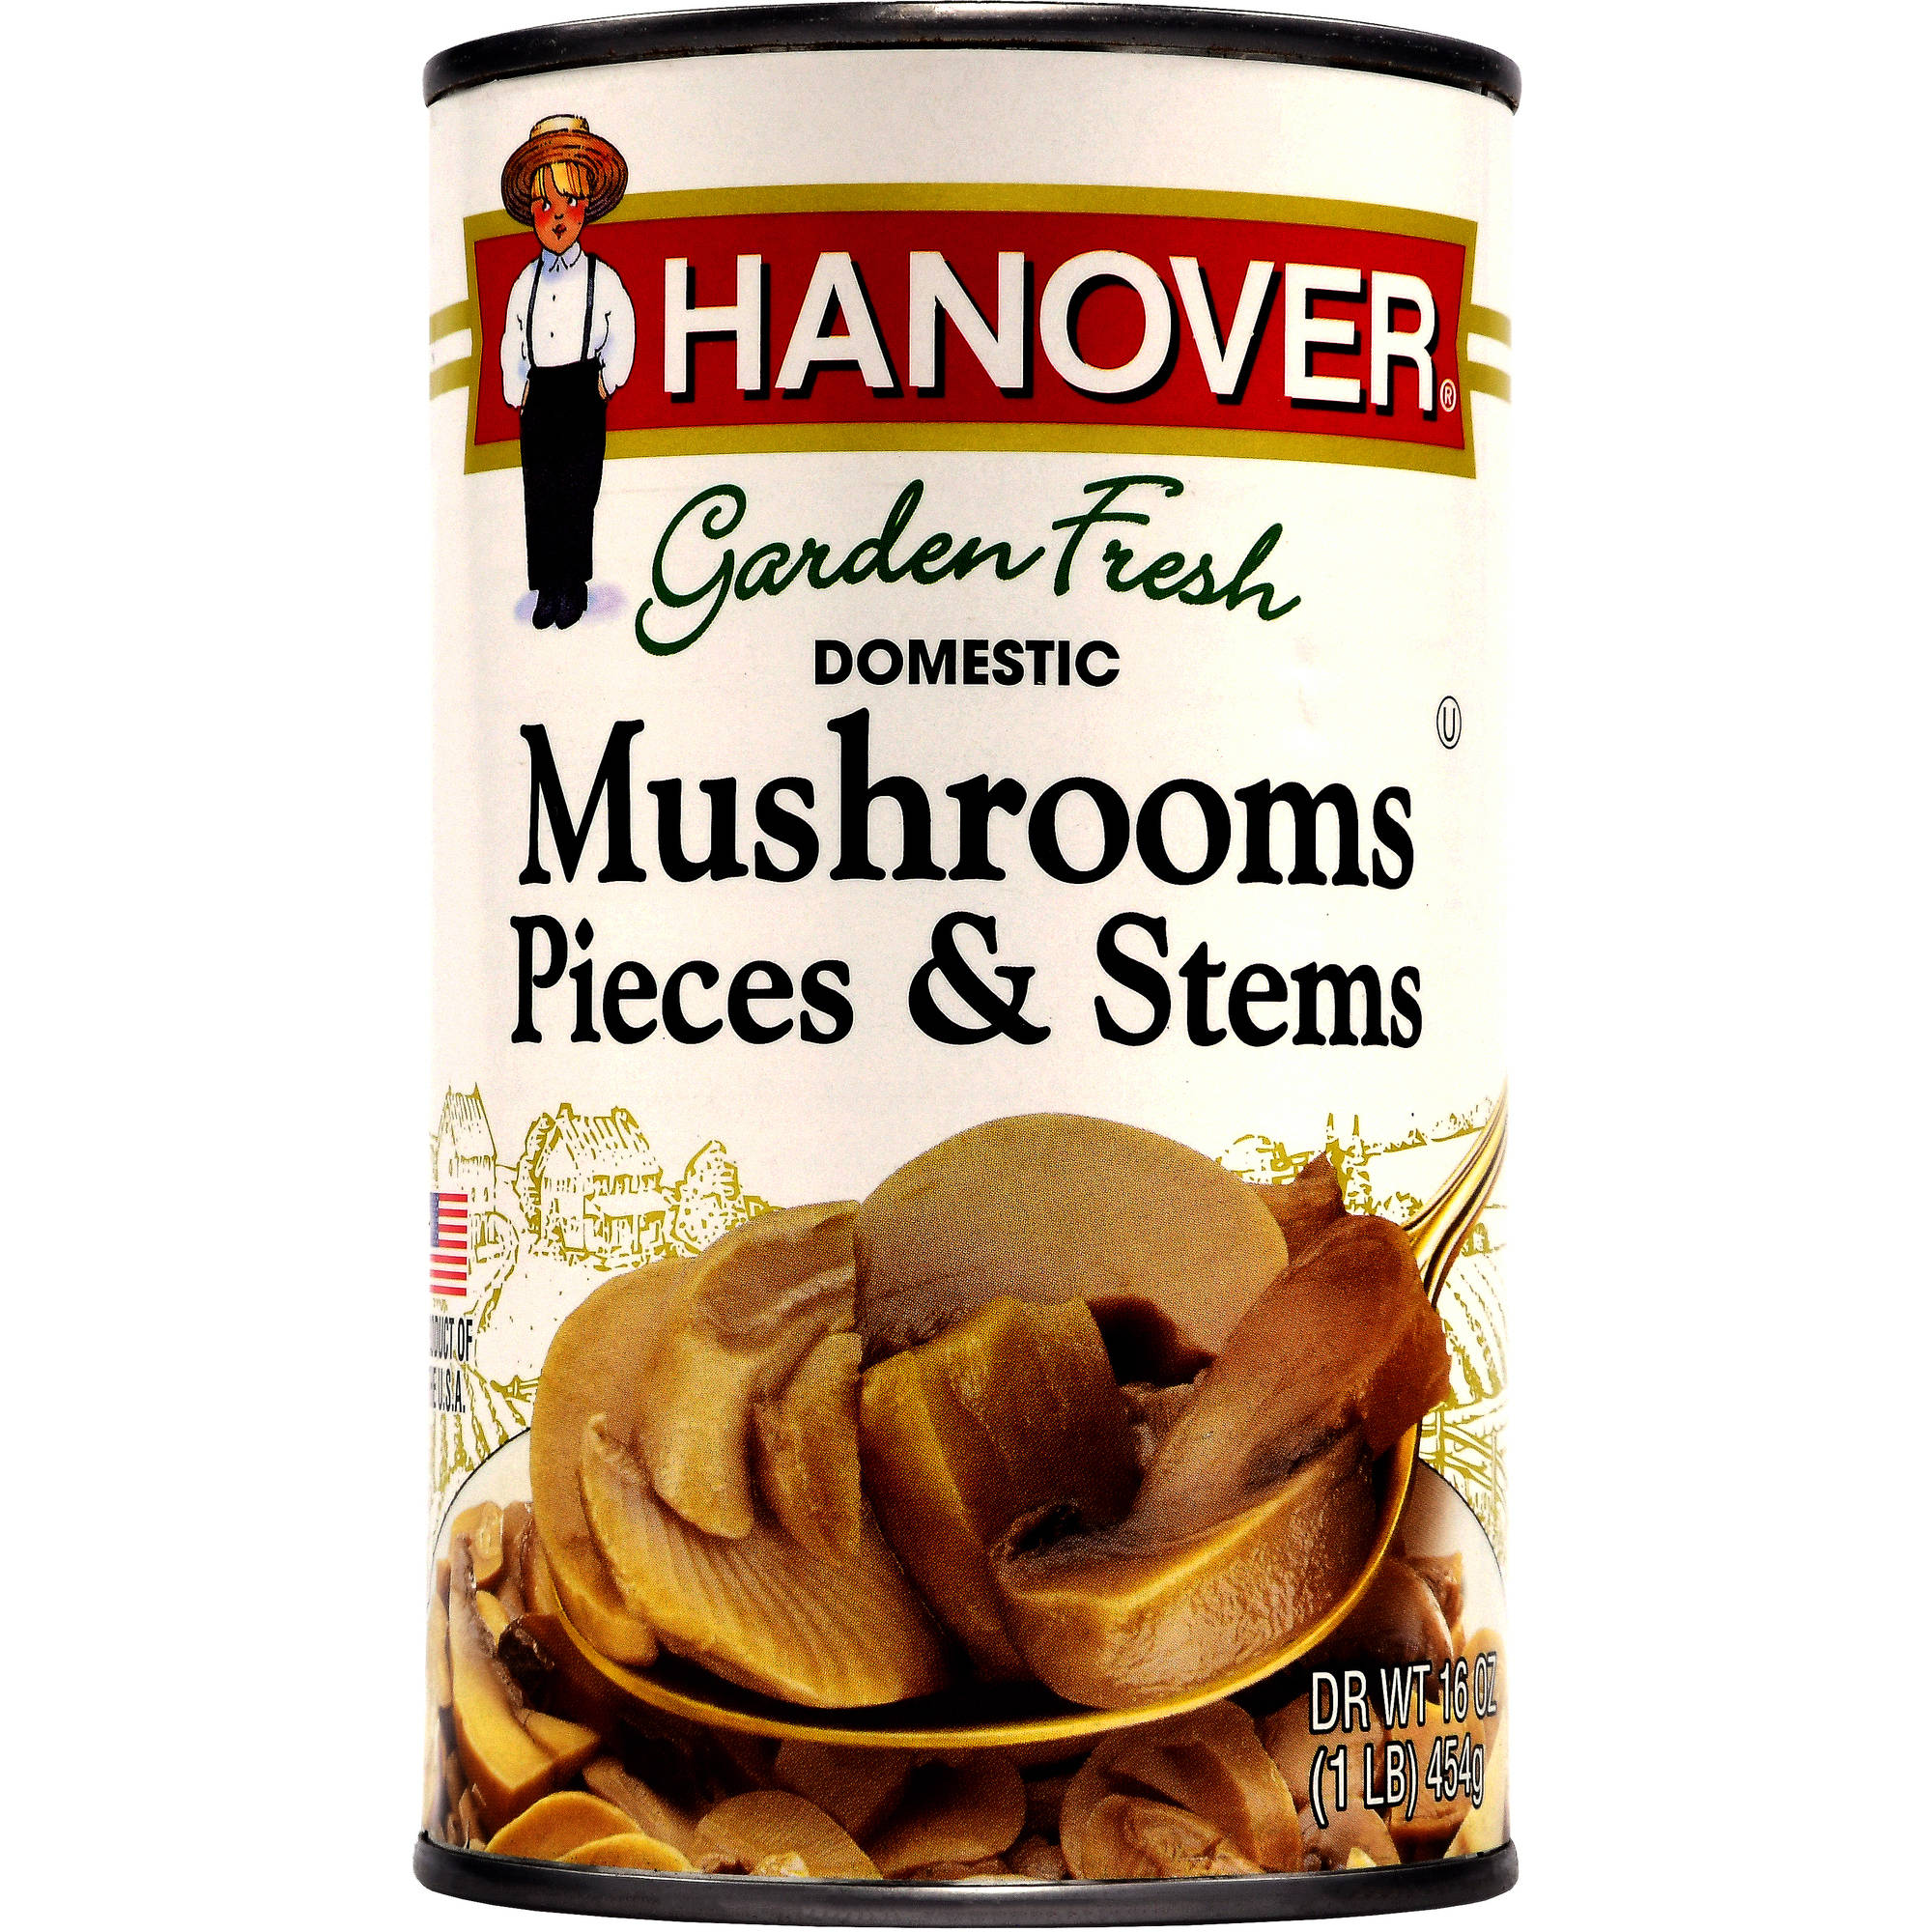 Hanover Domestic Mushrooms Pieces & Stems, 16 oz by Hanover Foods Corp.